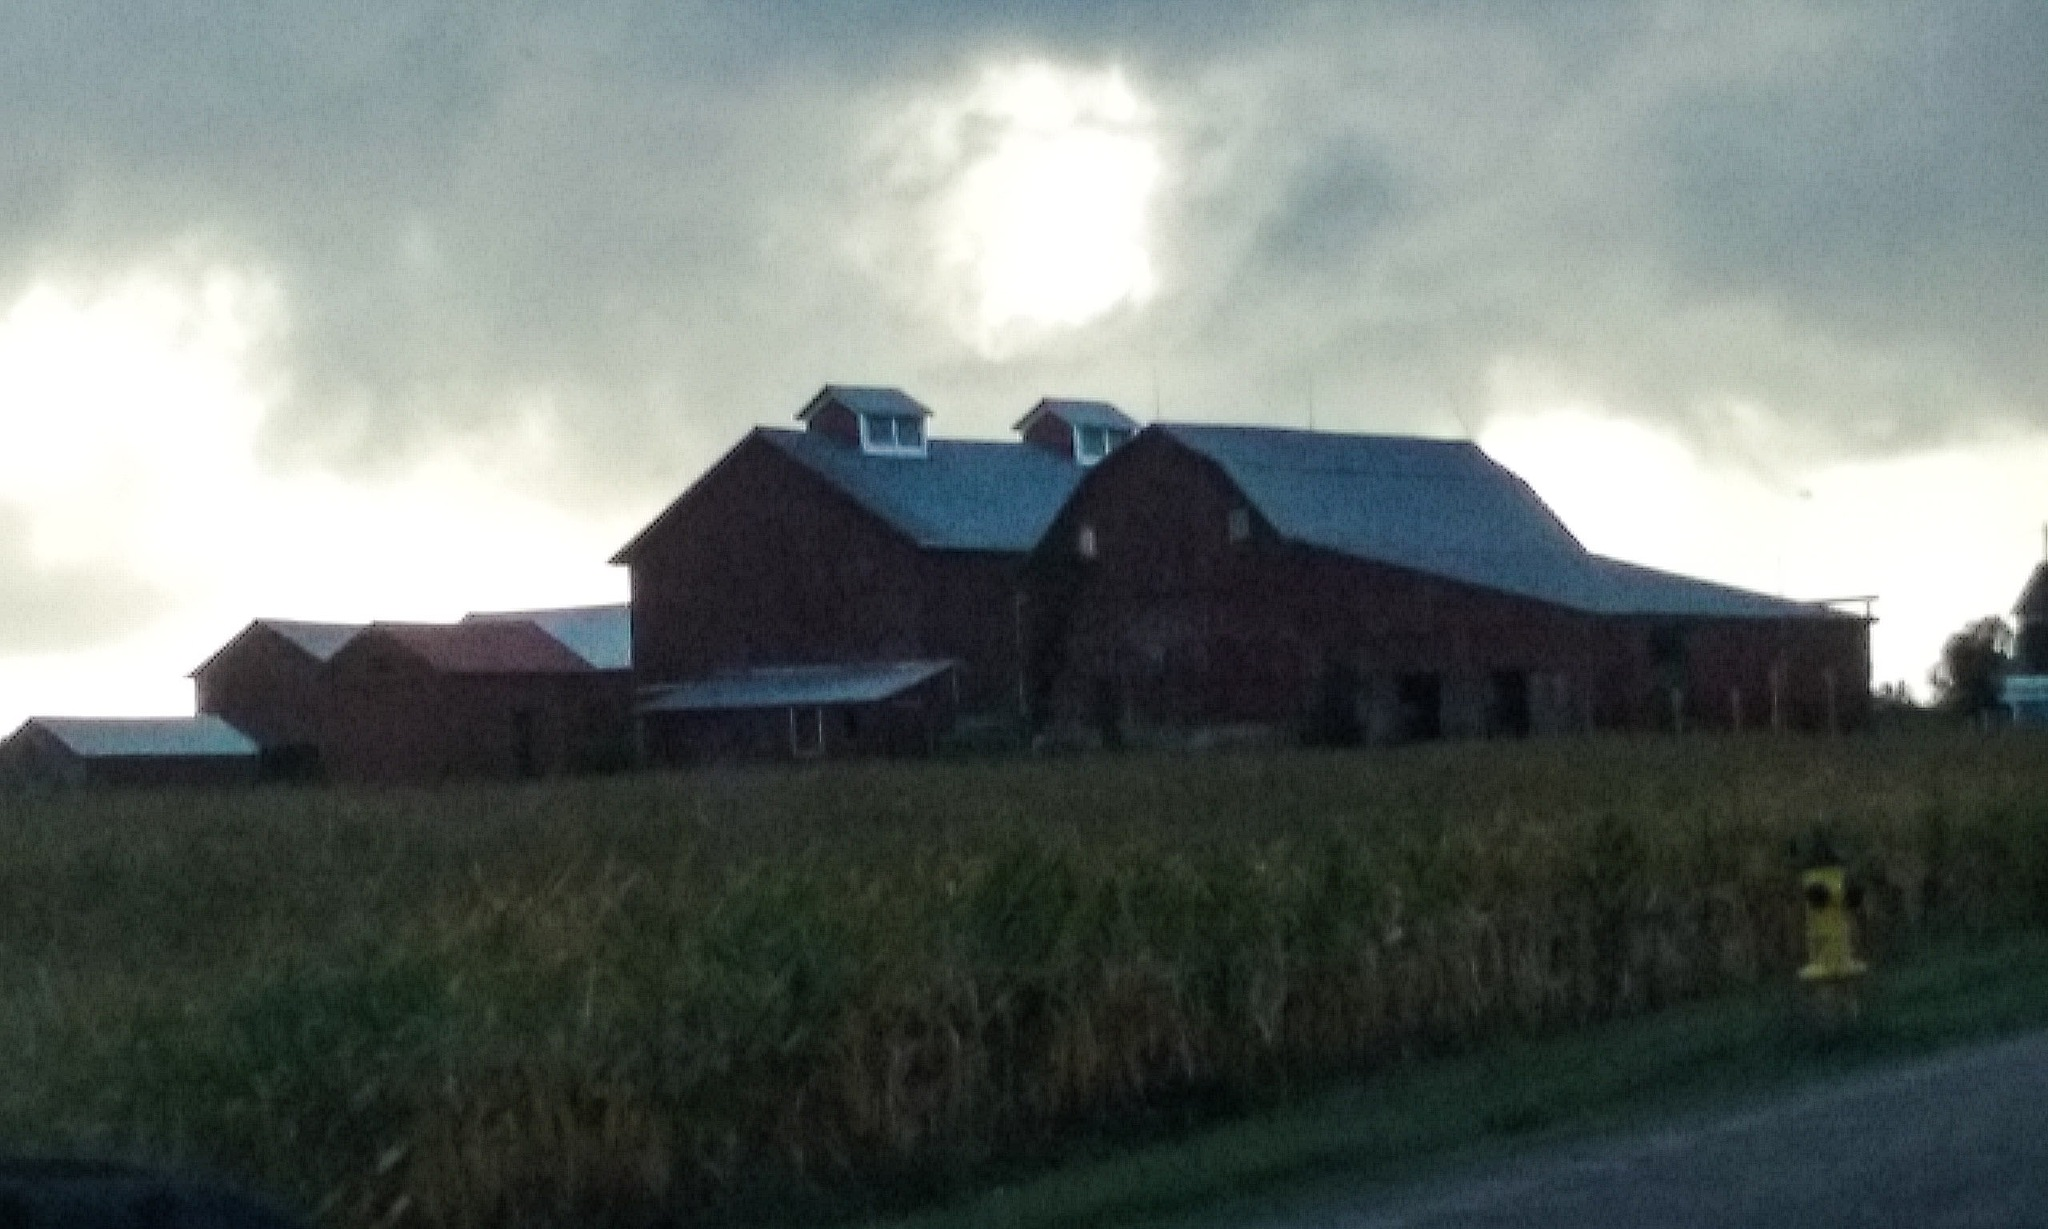 Rain Clouds Over Barns by Mark Morrison-LeMay